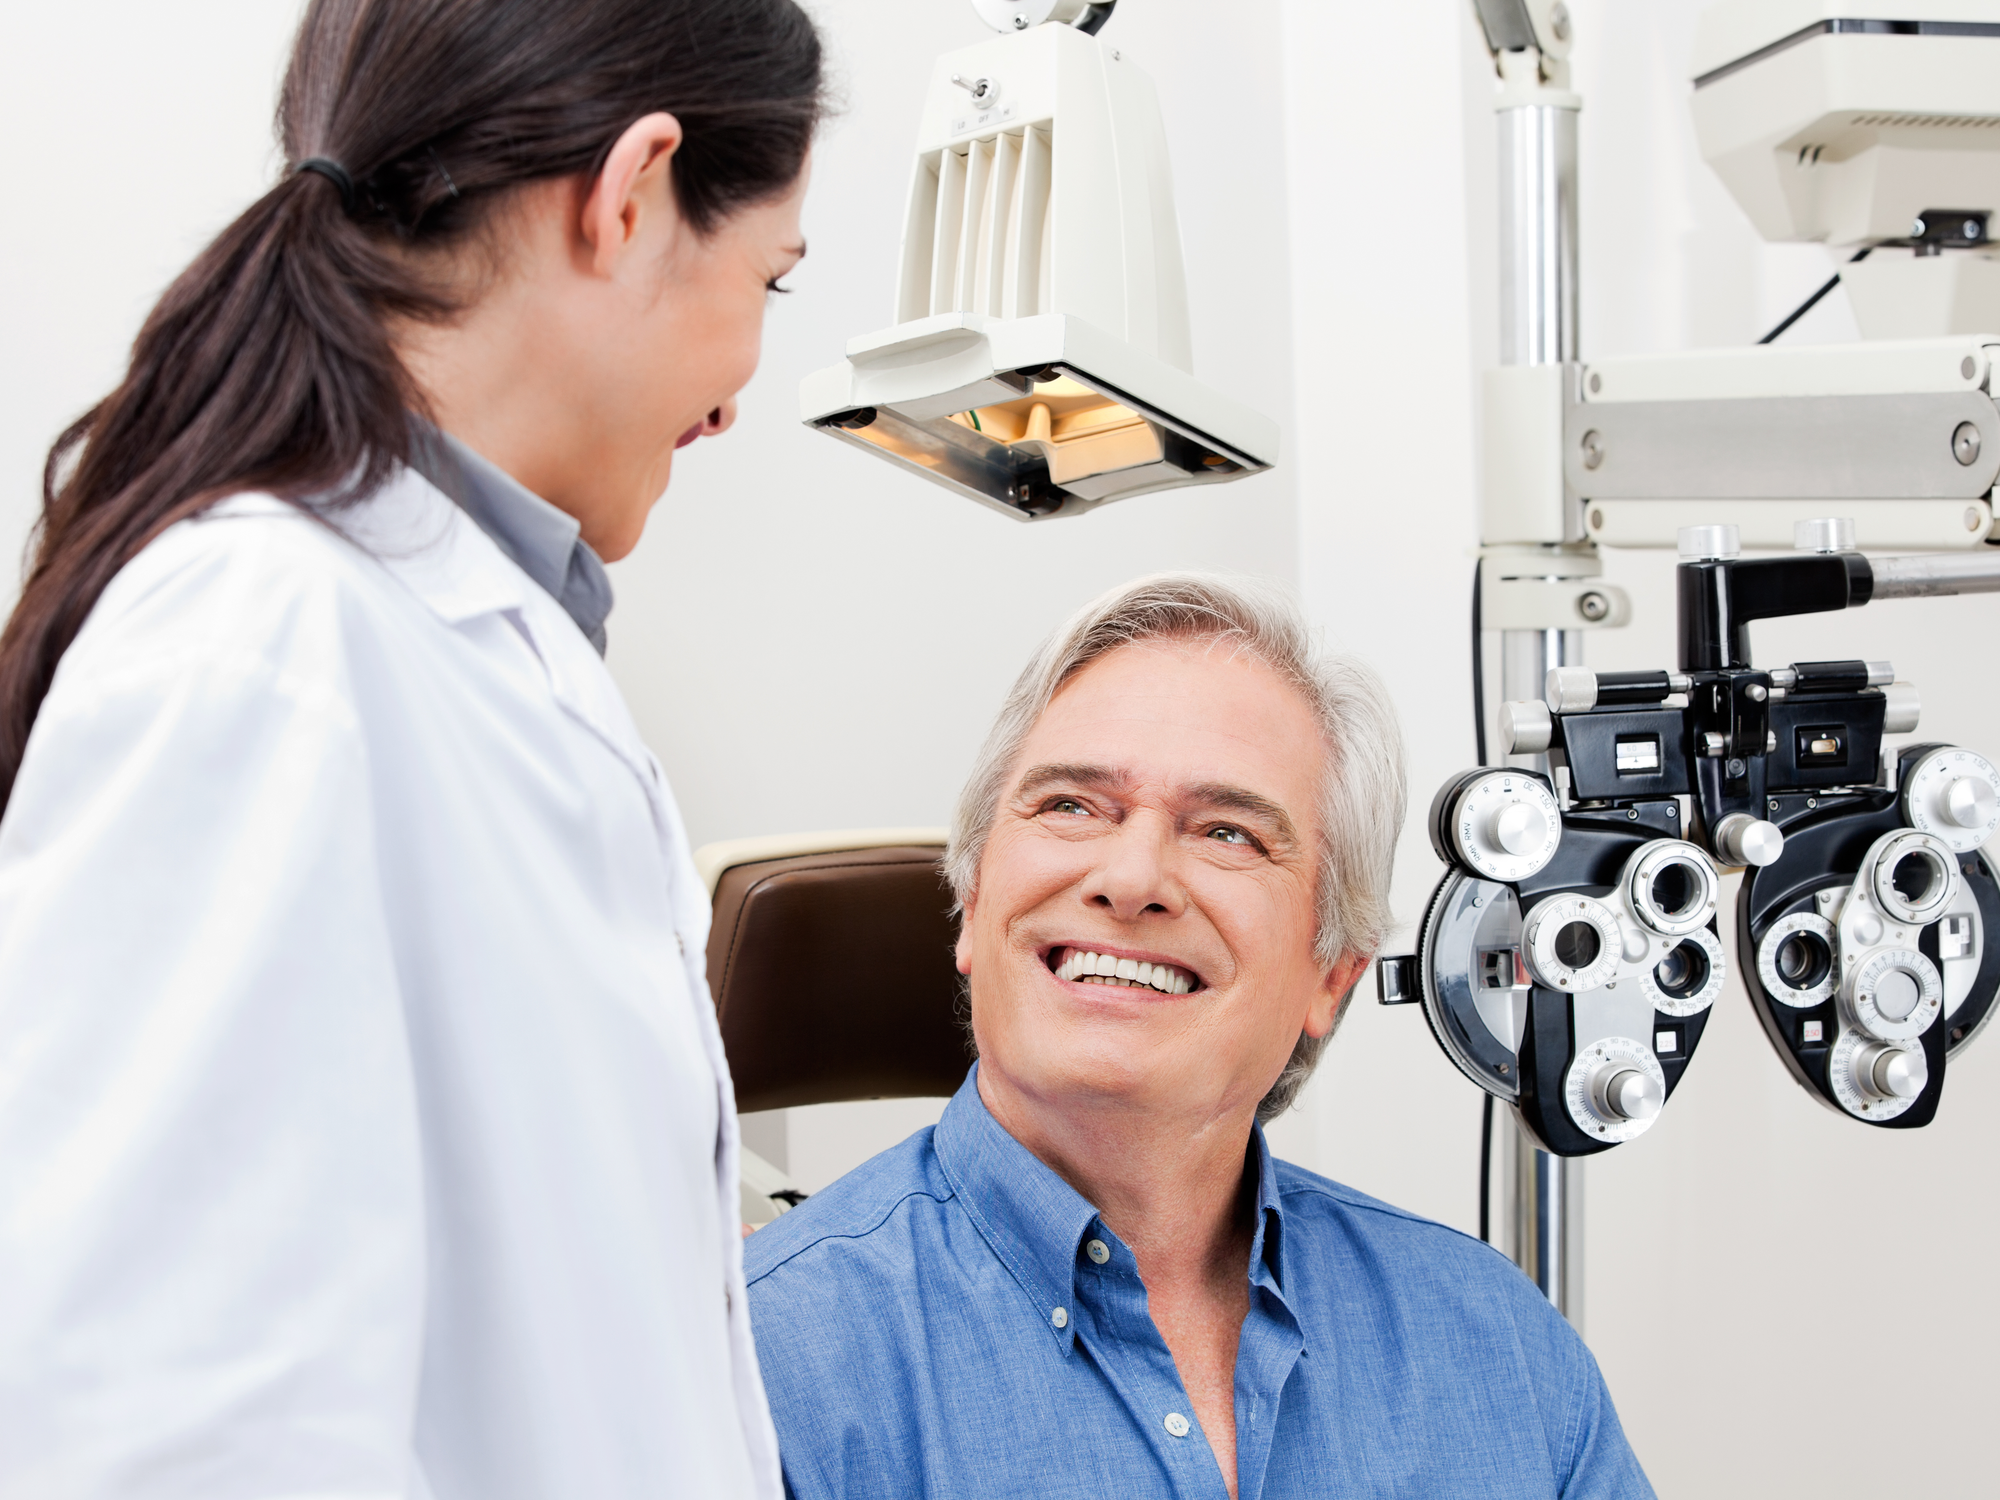 How Often Should Adults Get a Comprehensive Eye Exam?